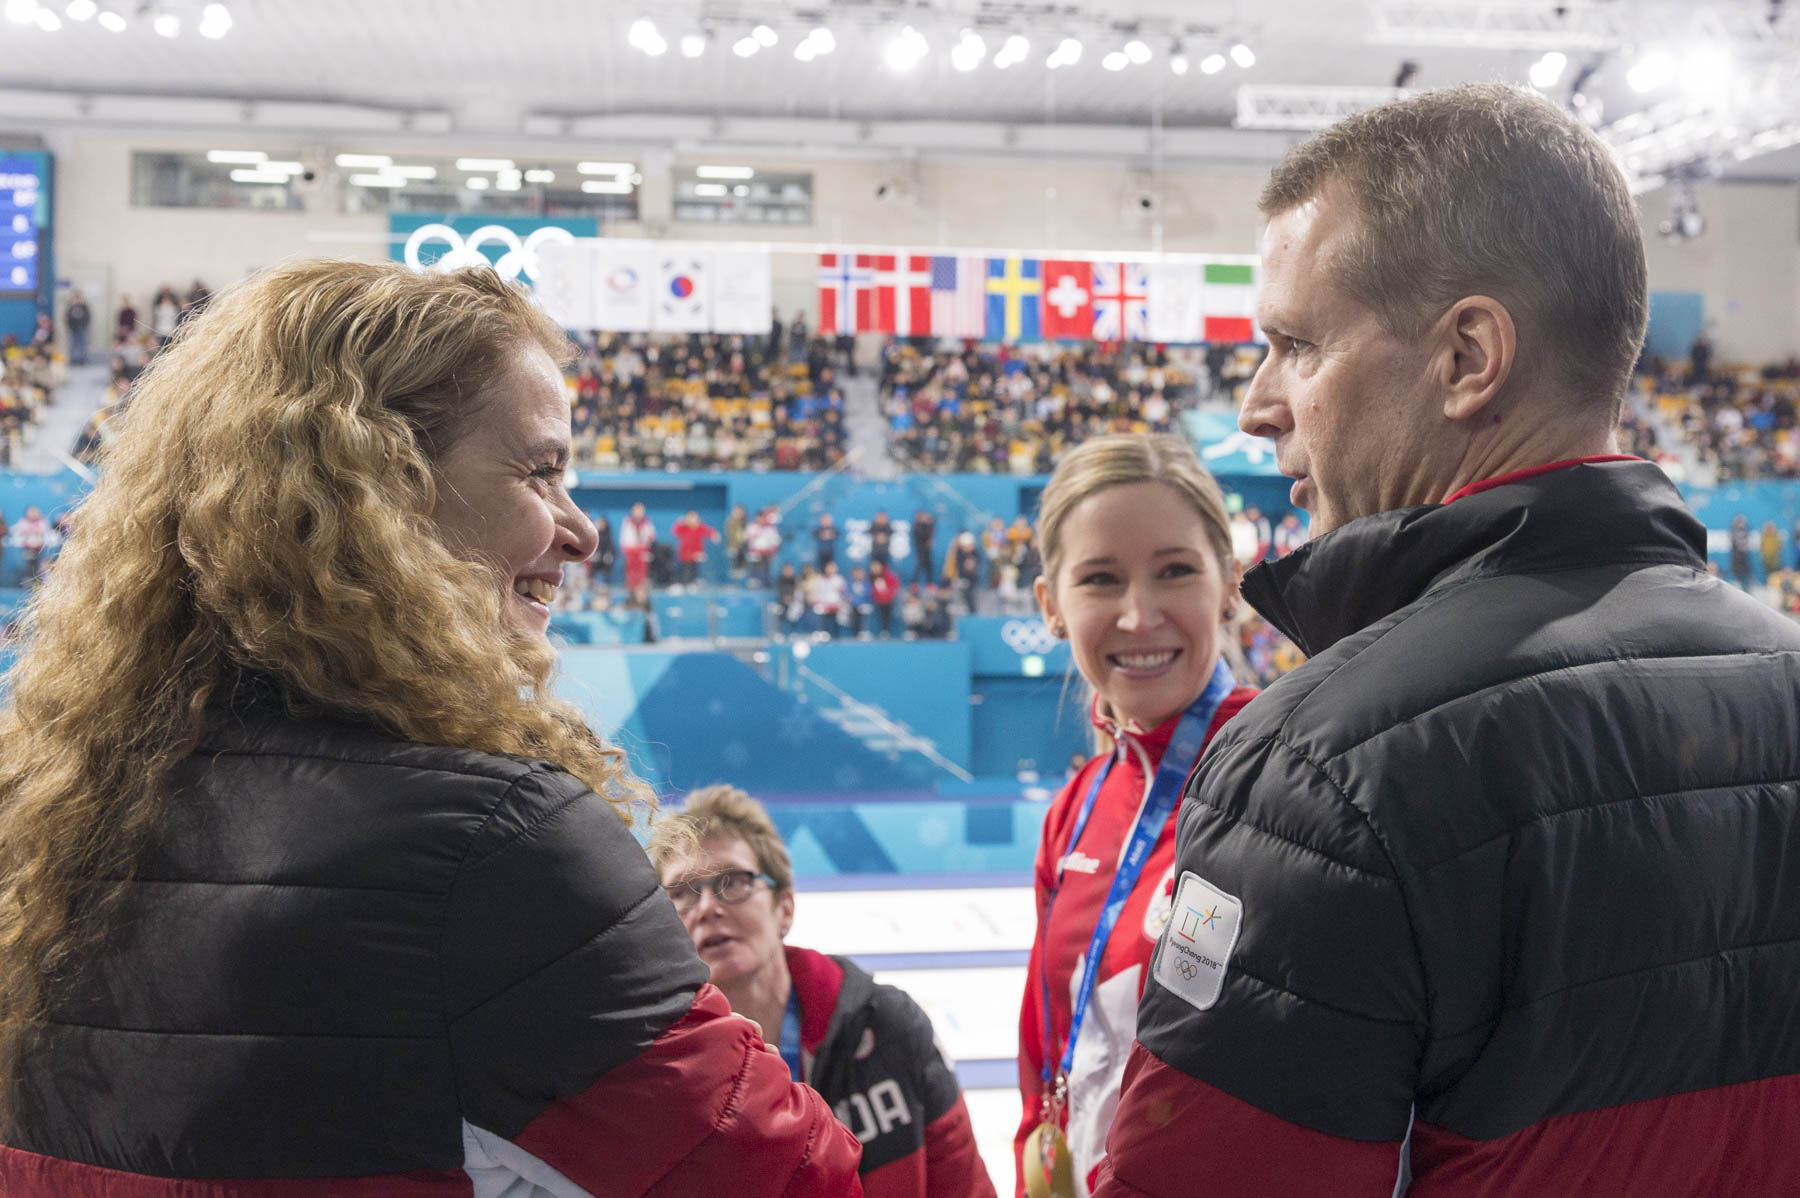 Following the game, Her Excellency met with Team Canada athlete Kaitlyn Lawes and head coach Jeff Stoughton.